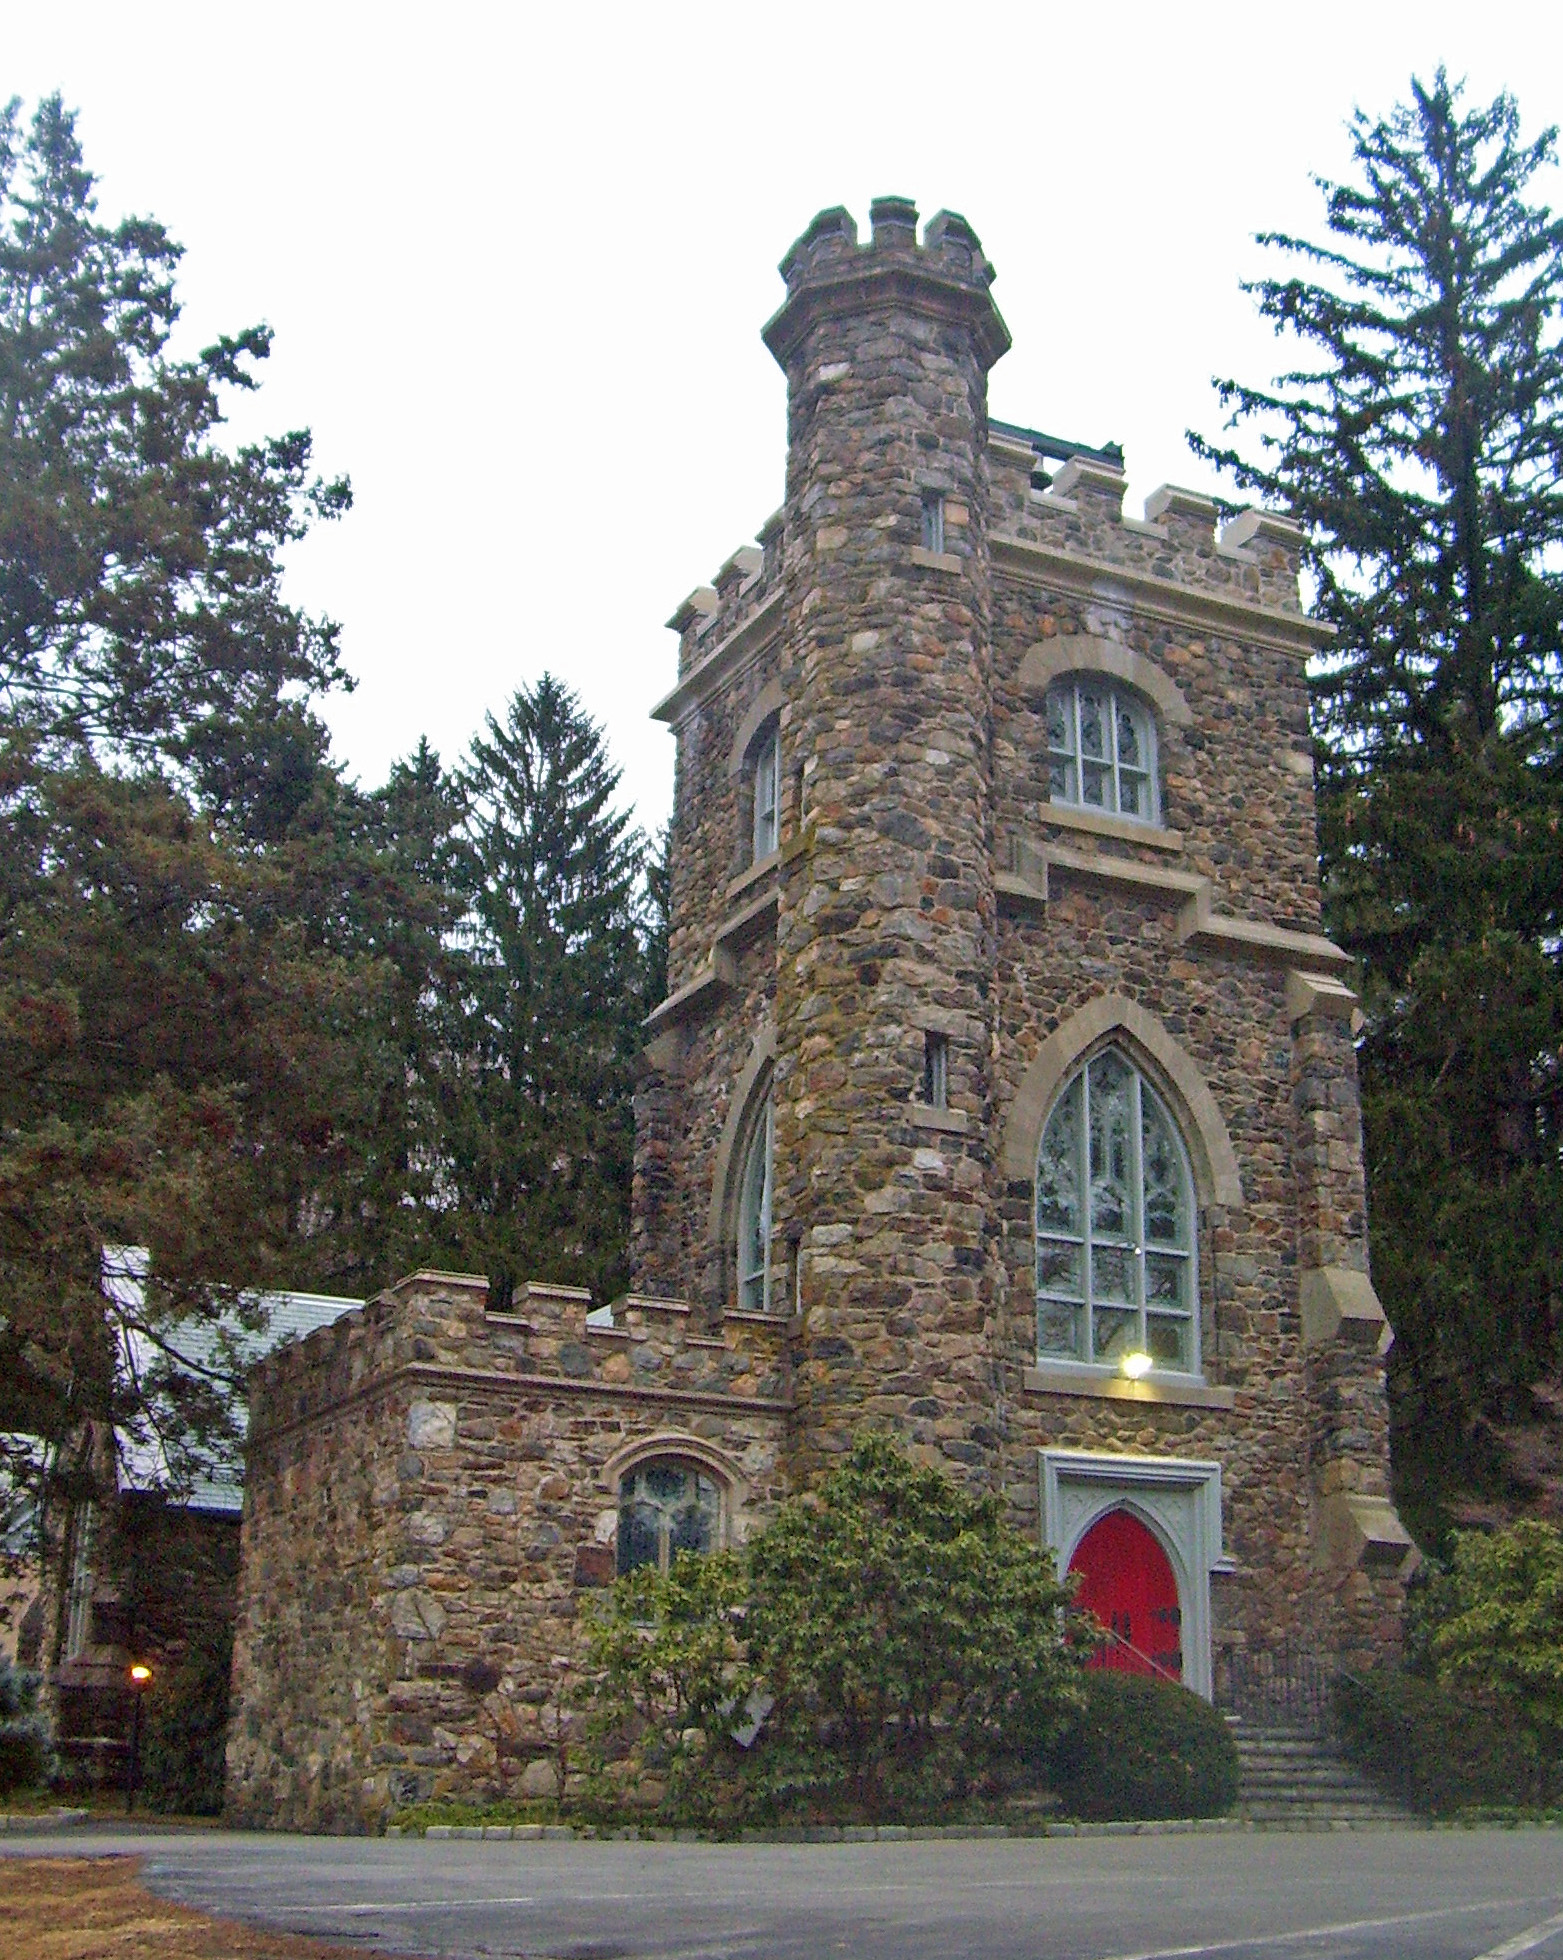 Church of The Virgin Mary, Chappaqua, New York